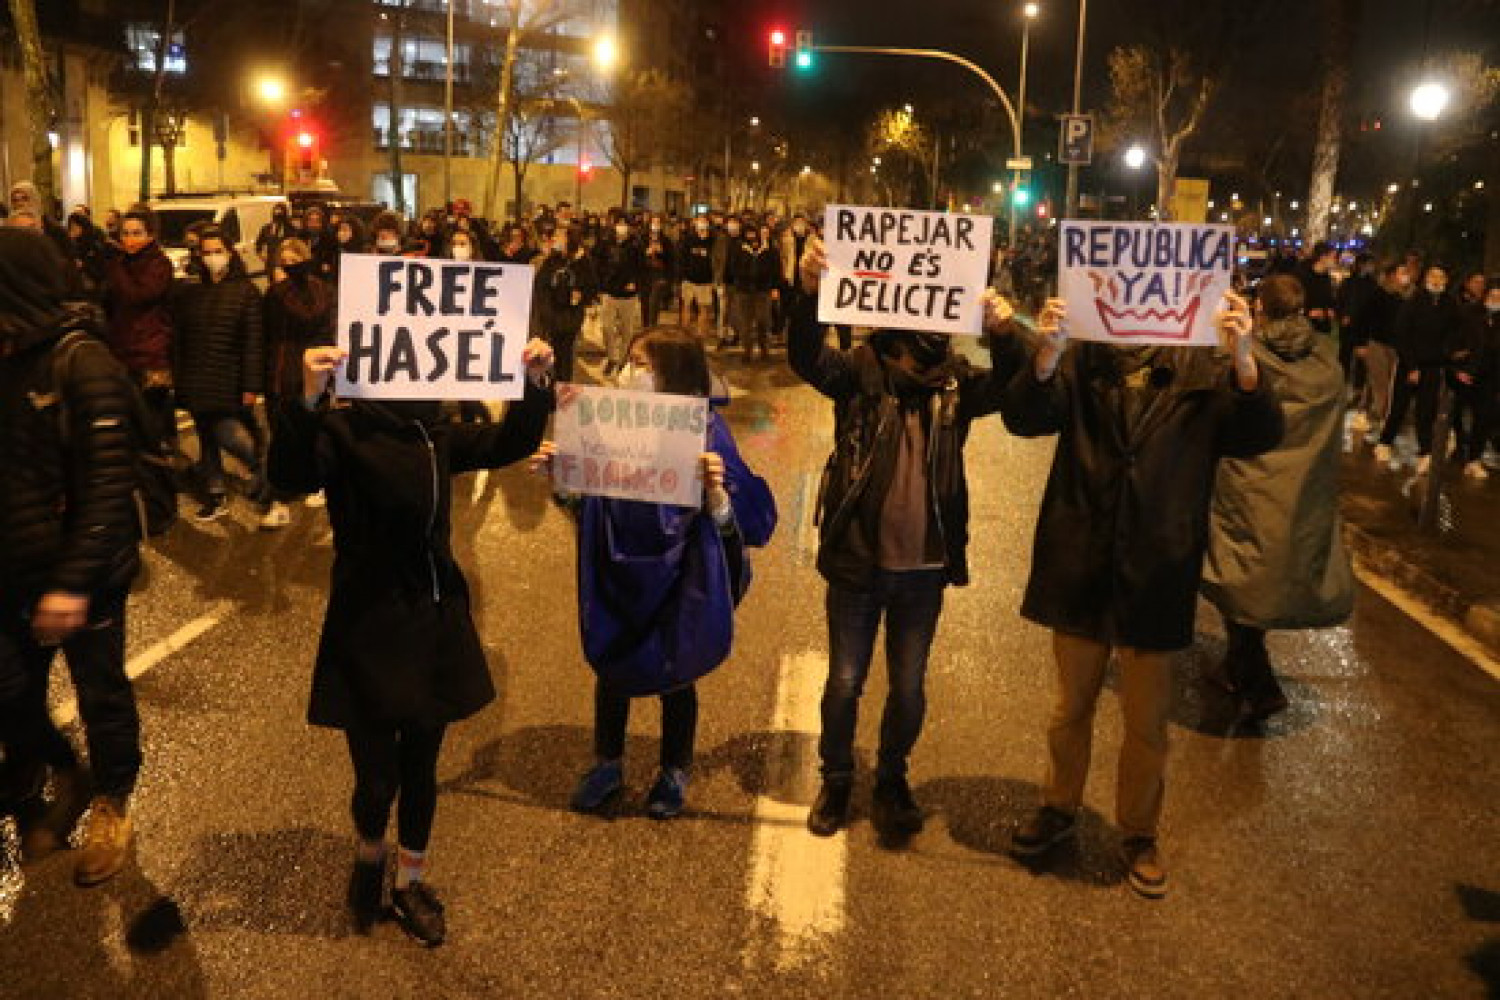 Demonstrators in Barcelona show support for jailed rapper Pablo Hasel, February 22, 2021 (by Miquel Codolar)